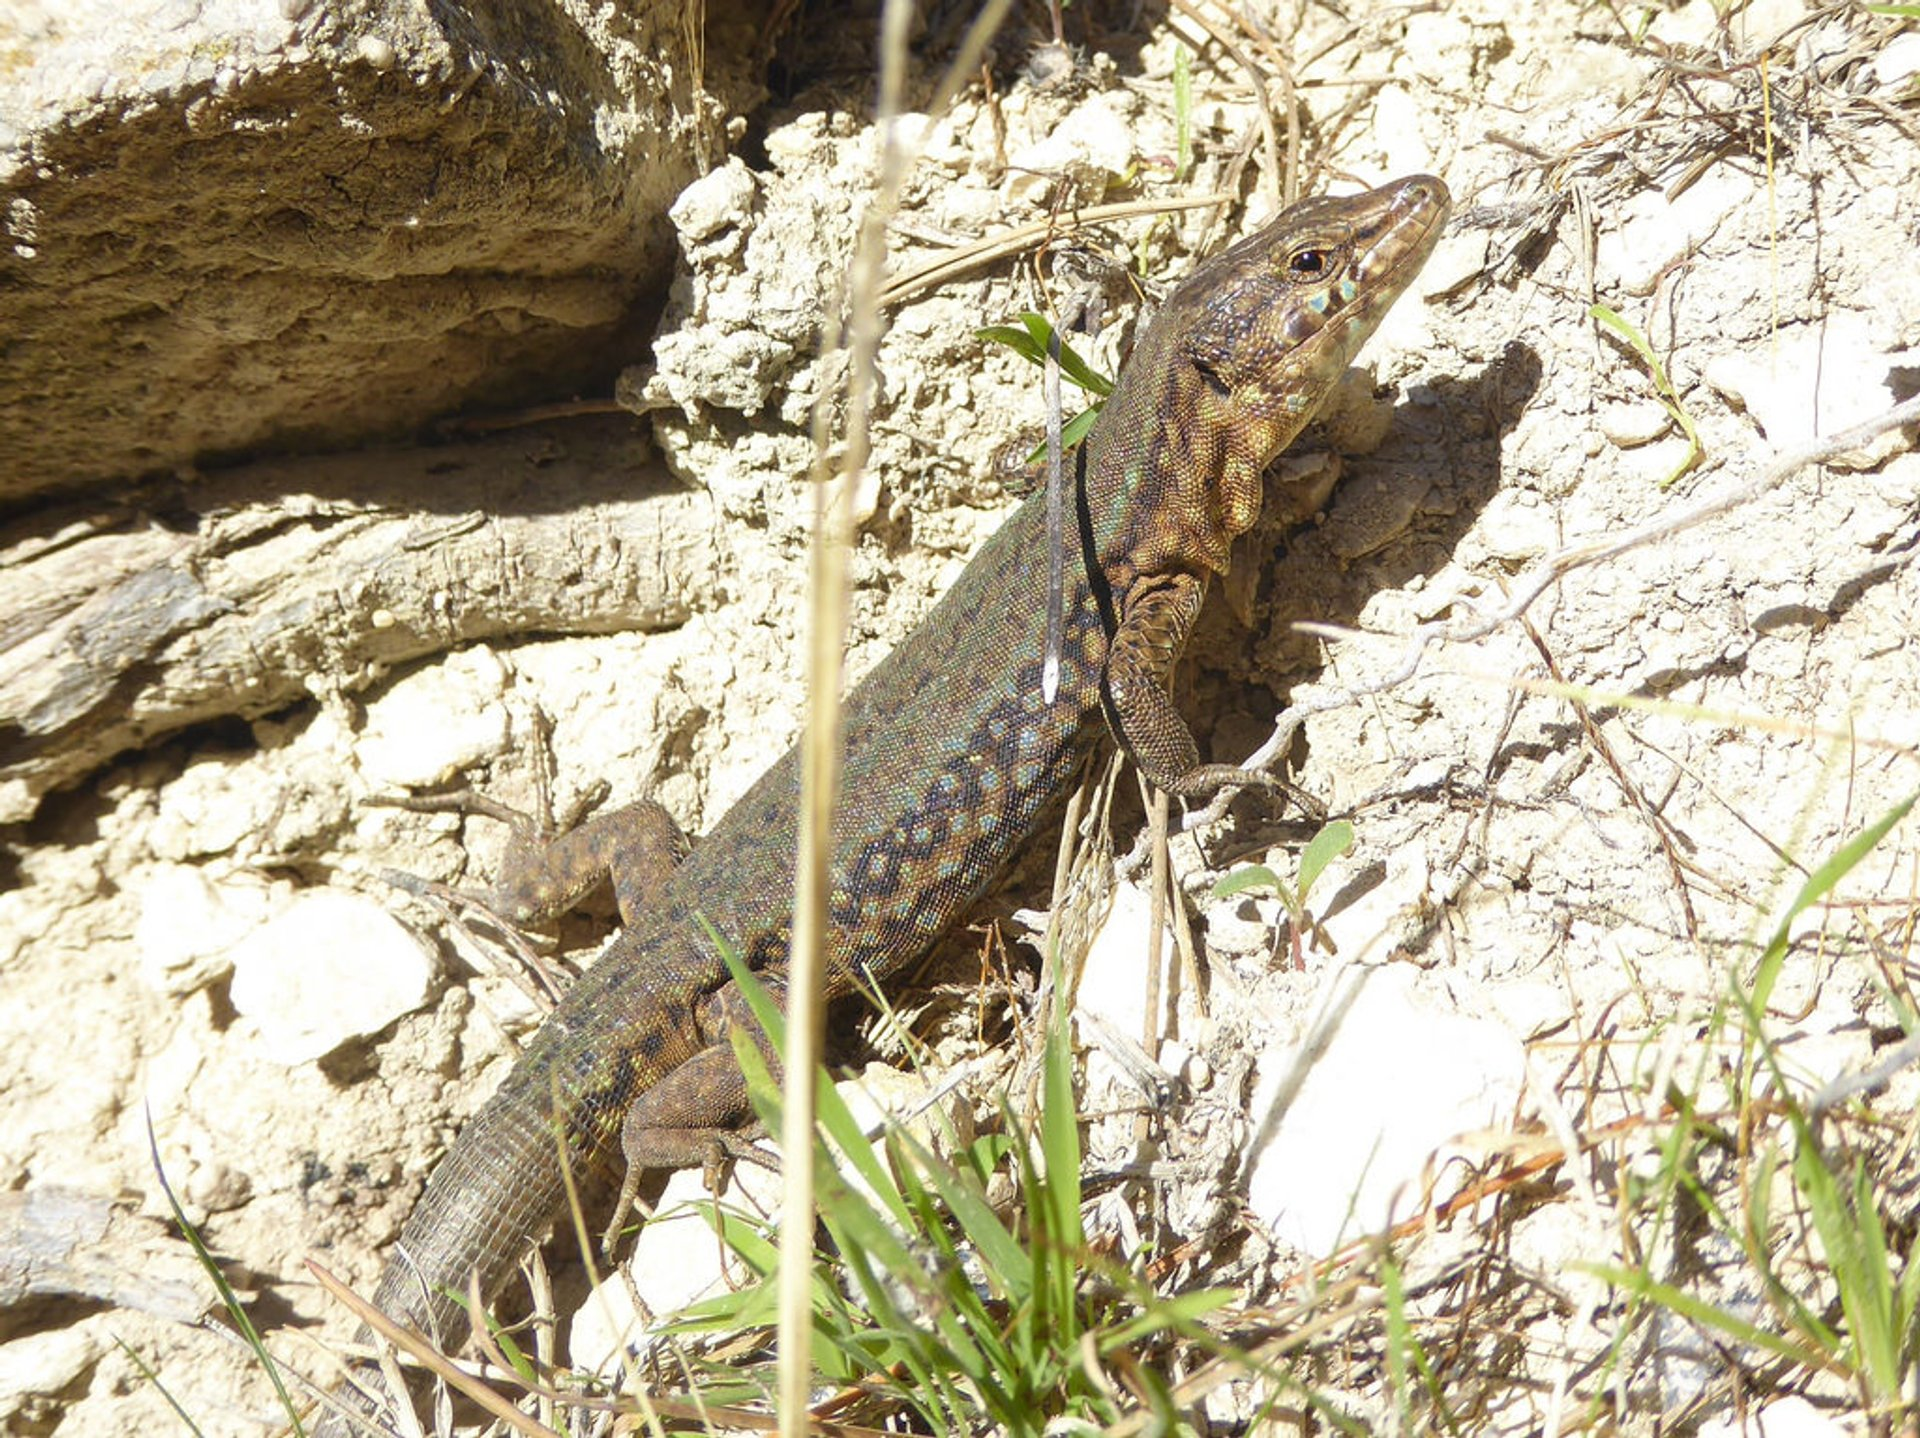 Lizards of Sa Dragonera in Mallorca 2019 - Best Time